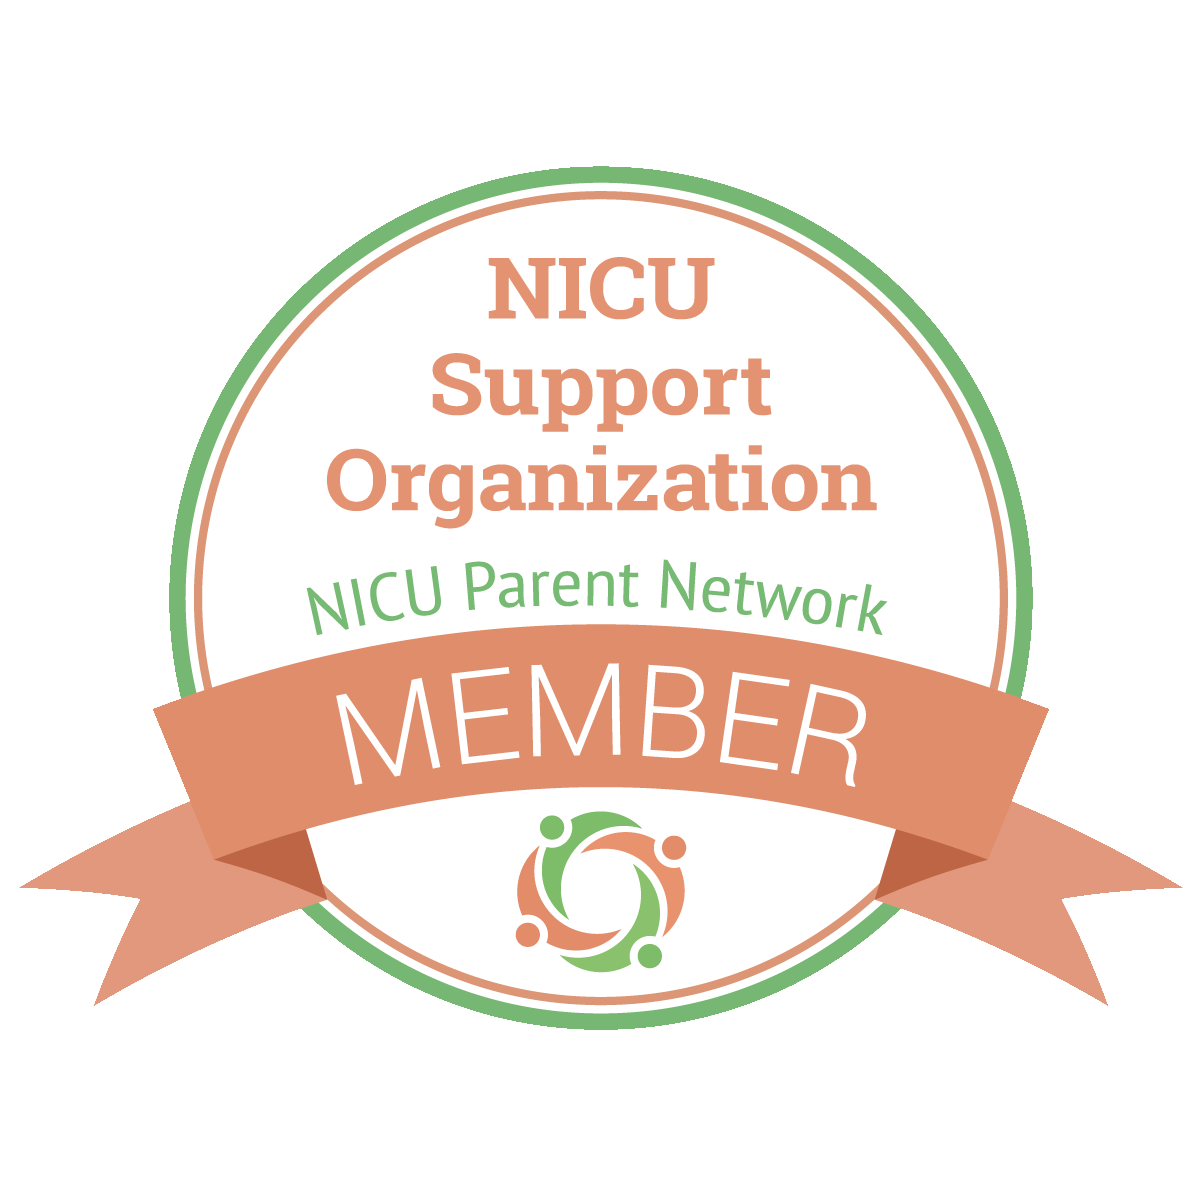 NICU Support Organization NICU Parent Network Member